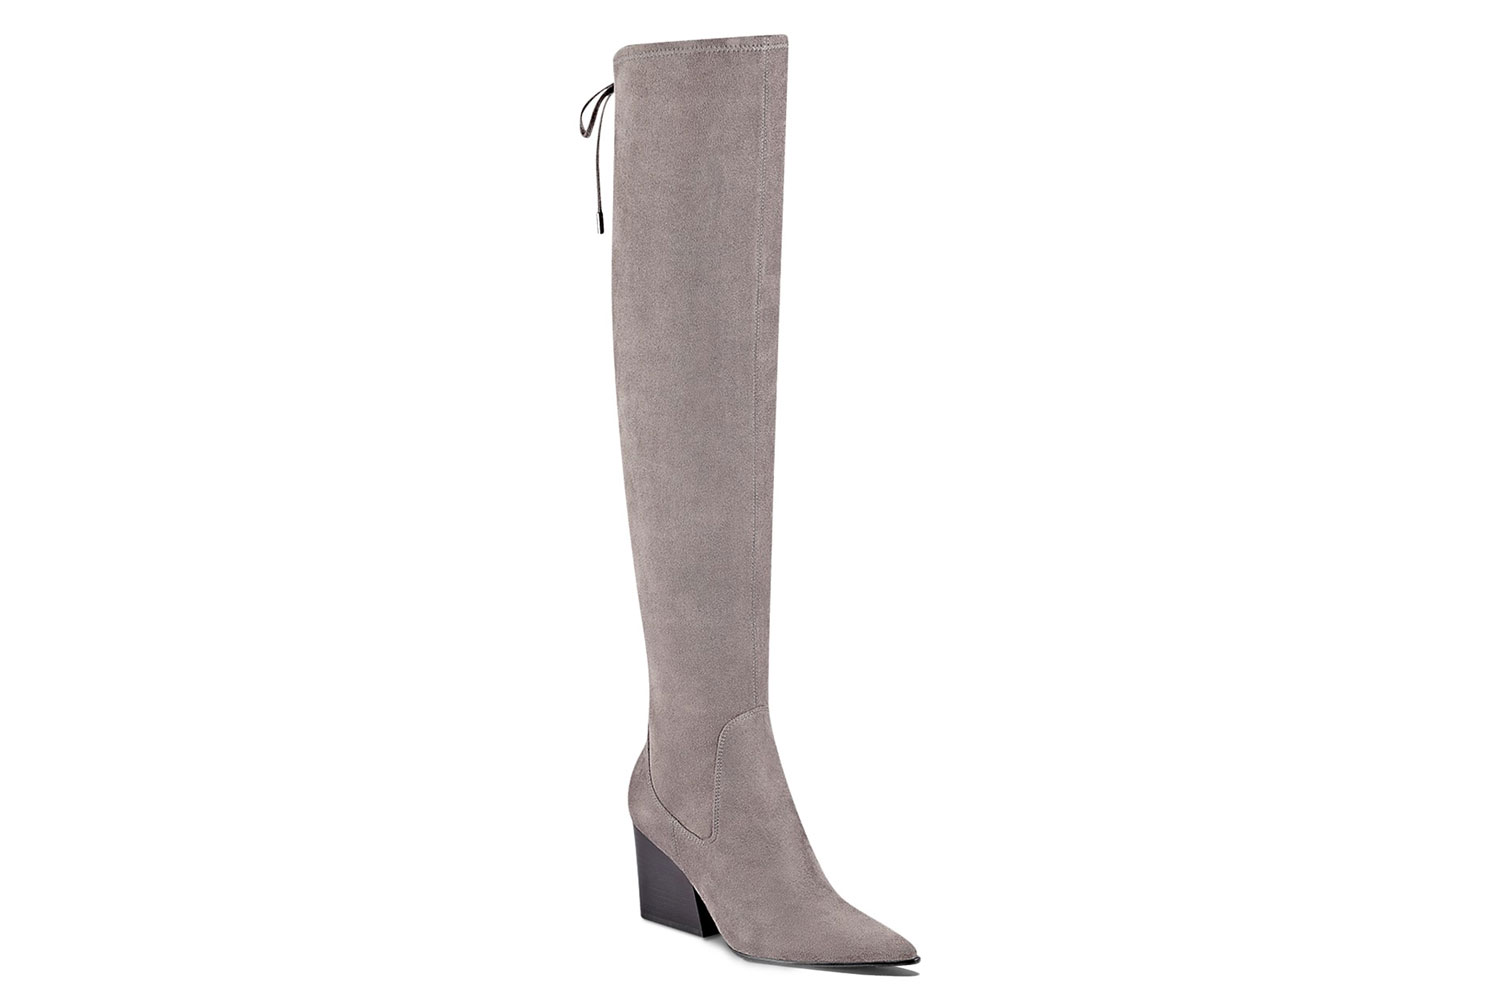 Kendall and Kylie Fedra Over the Knee Boots